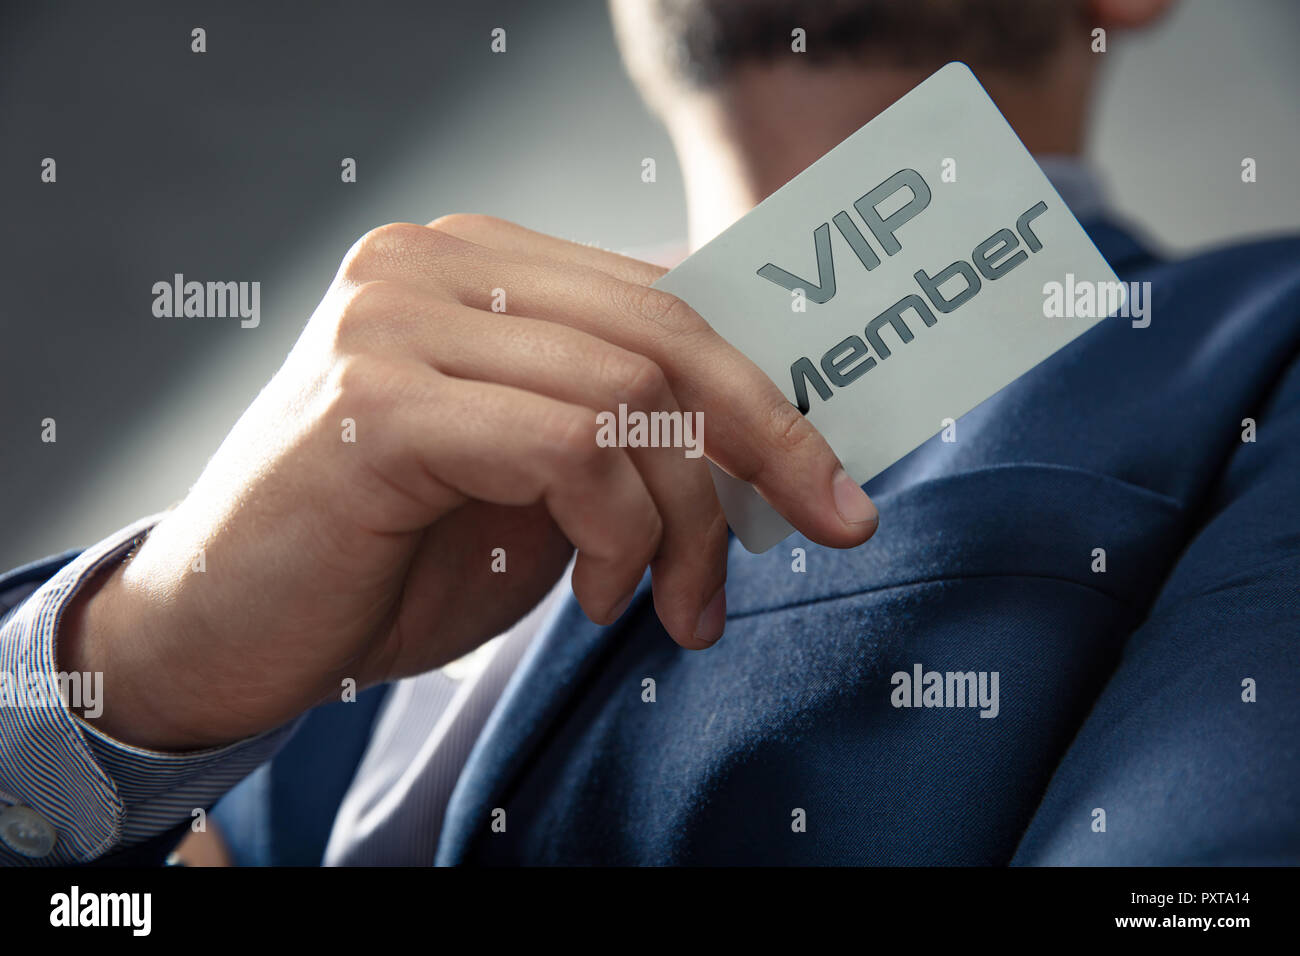 VIP member card holded by an elegant man in suit. - Stock Image